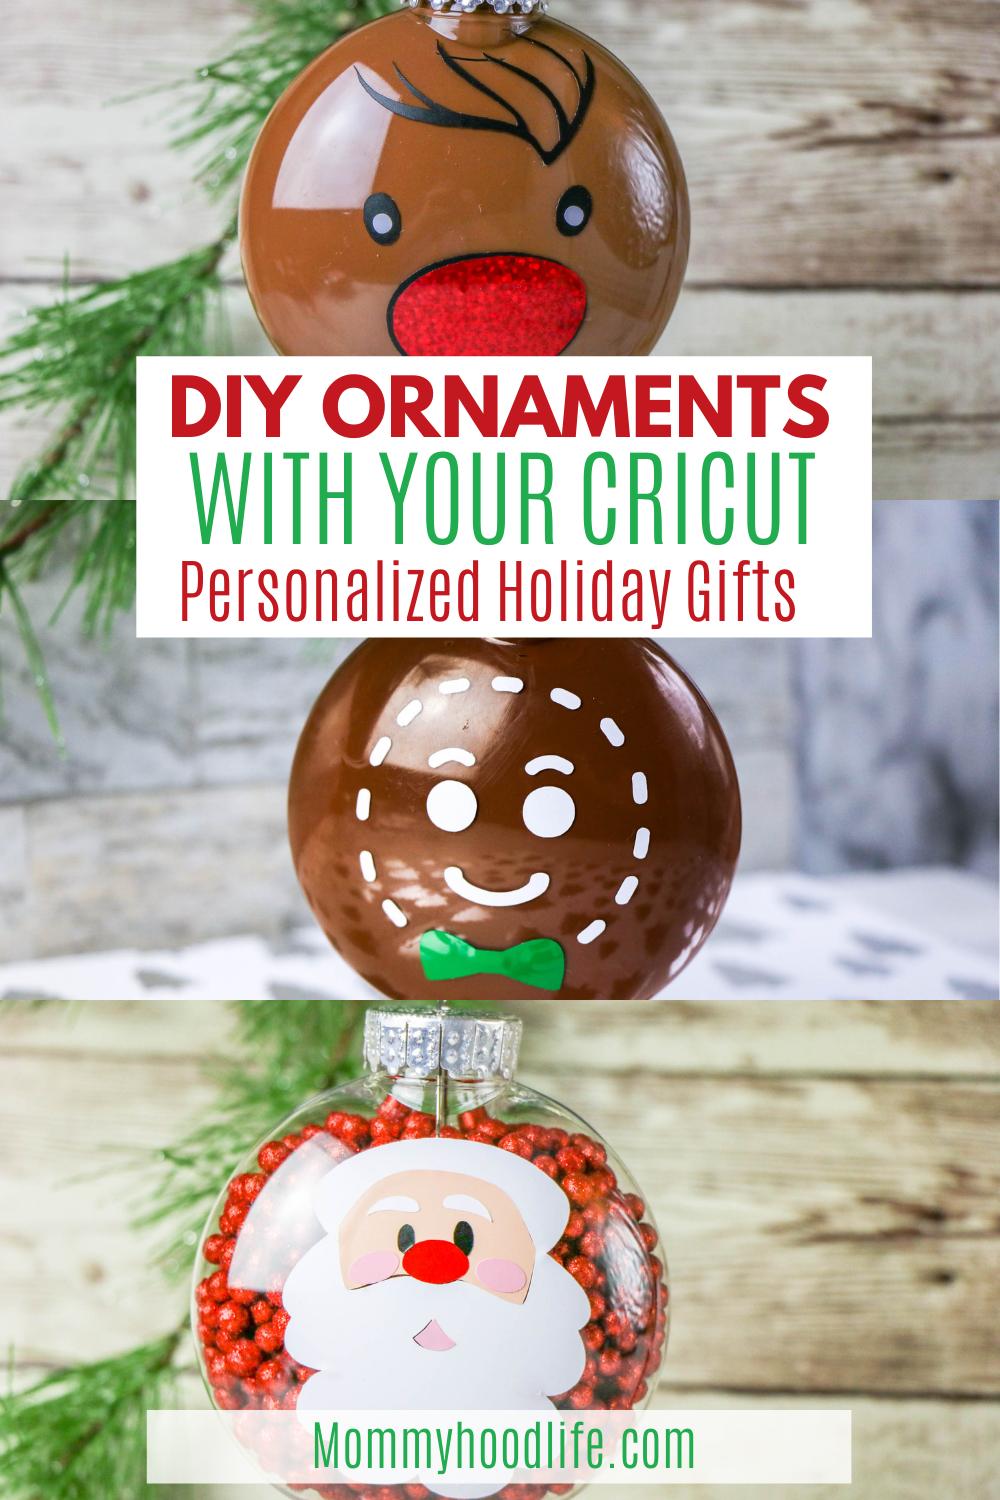 How To Create Disc Ornaments And 3 Cricut Ornaments Svg Designs Christmas Ornaments To Make Christmas Diy Kids Creative Christmas Crafts